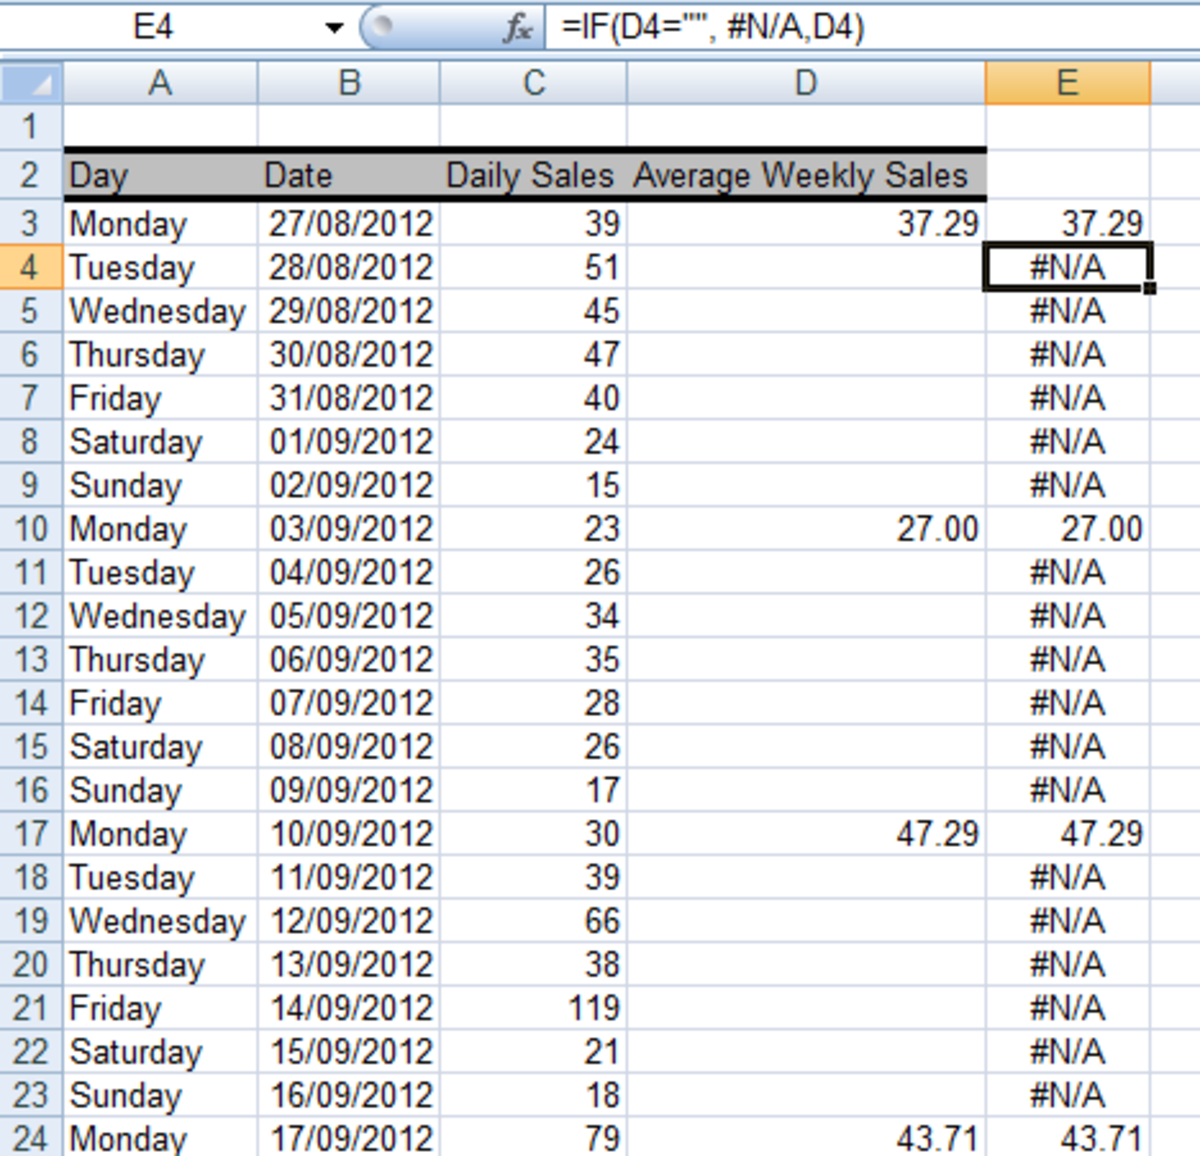 Ediblewildsus  Fascinating How To Get Excel  And  To Ignore Empty Cells In A Chart Or  With Hot Using The If Function In A Formula To Convert Empty Cells To Na With Breathtaking Pick List In Excel Also Excel Vba Conditional Formatting In Addition Log Scale Excel And Can T Scroll In Excel As Well As Excel Number Format Millions Additionally Excel List Of States From Turbofuturecom With Ediblewildsus  Hot How To Get Excel  And  To Ignore Empty Cells In A Chart Or  With Breathtaking Using The If Function In A Formula To Convert Empty Cells To Na And Fascinating Pick List In Excel Also Excel Vba Conditional Formatting In Addition Log Scale Excel From Turbofuturecom